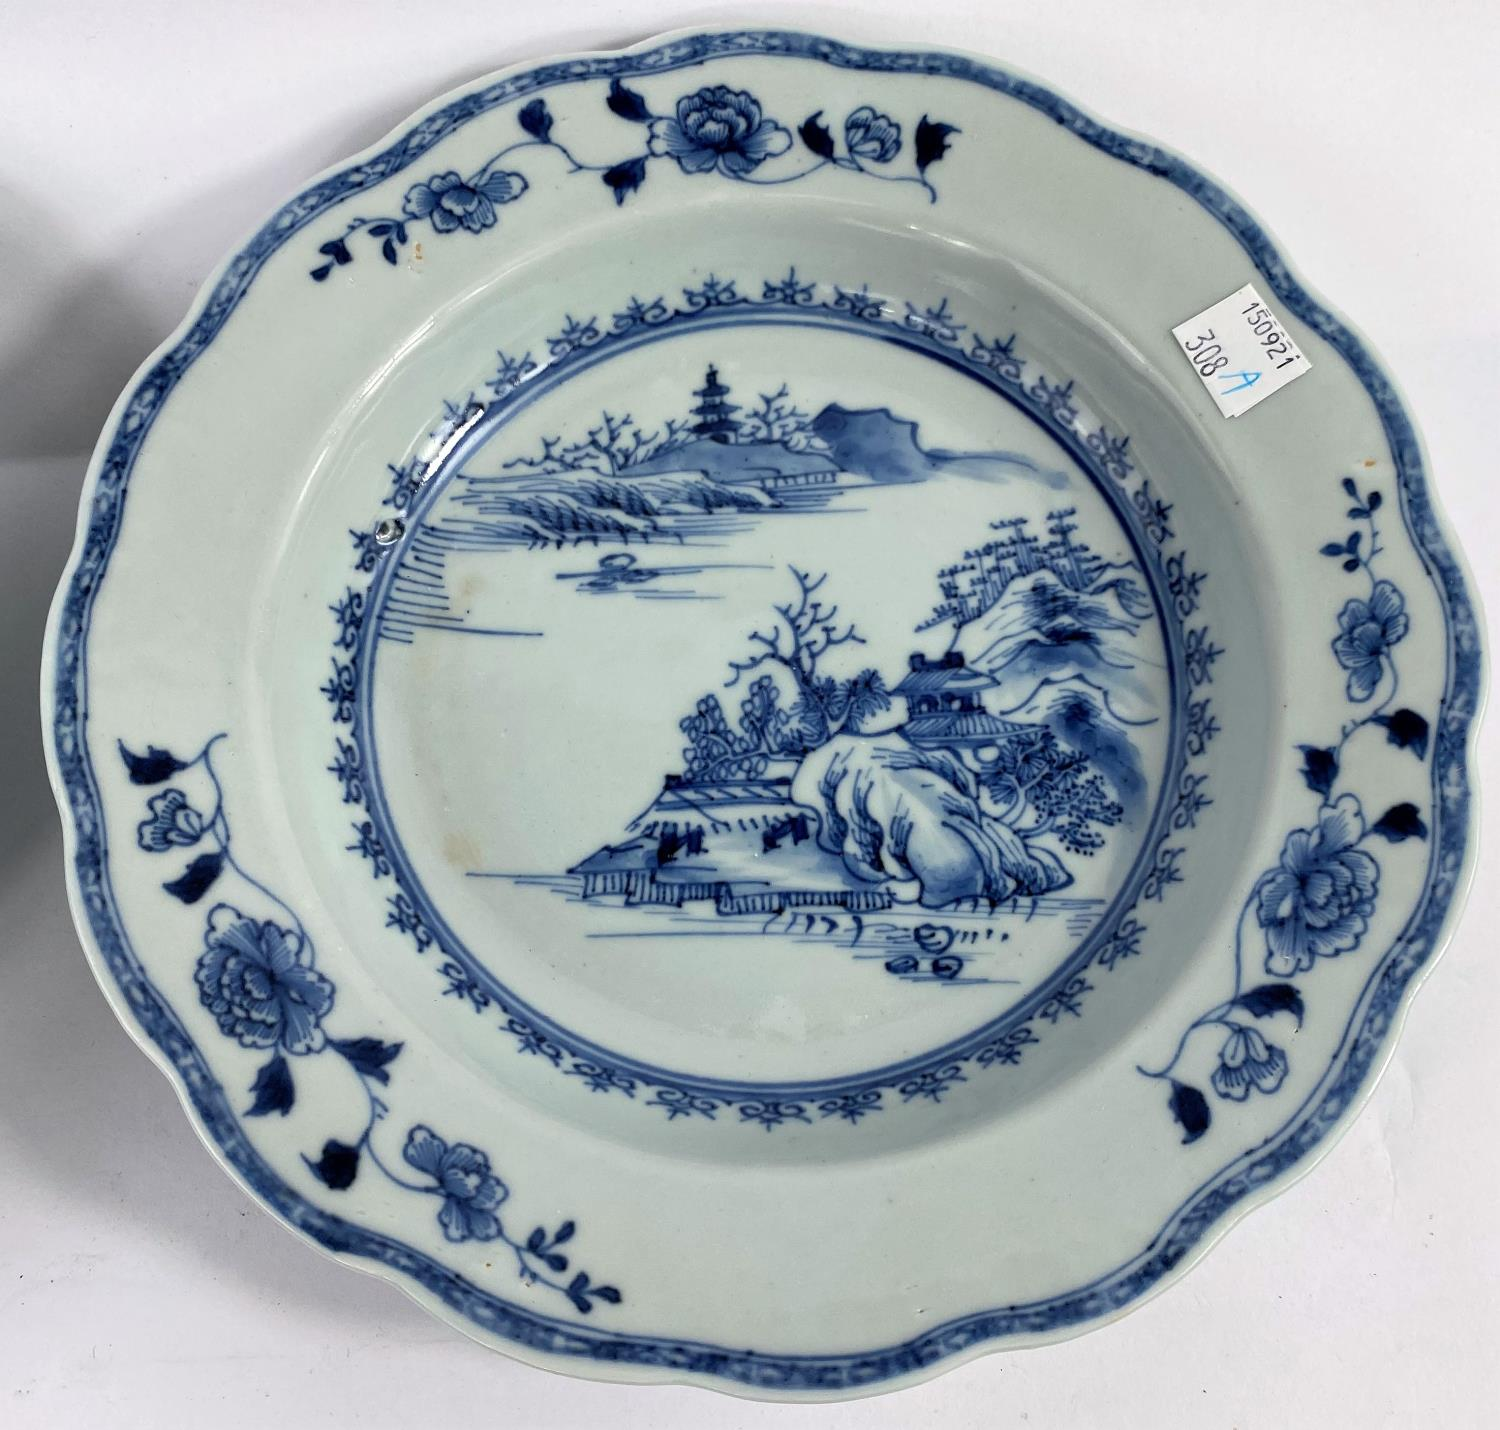 A pair of 18th century Chinese blue and white shallow dishes with traditional mountain scenes, - Image 3 of 6